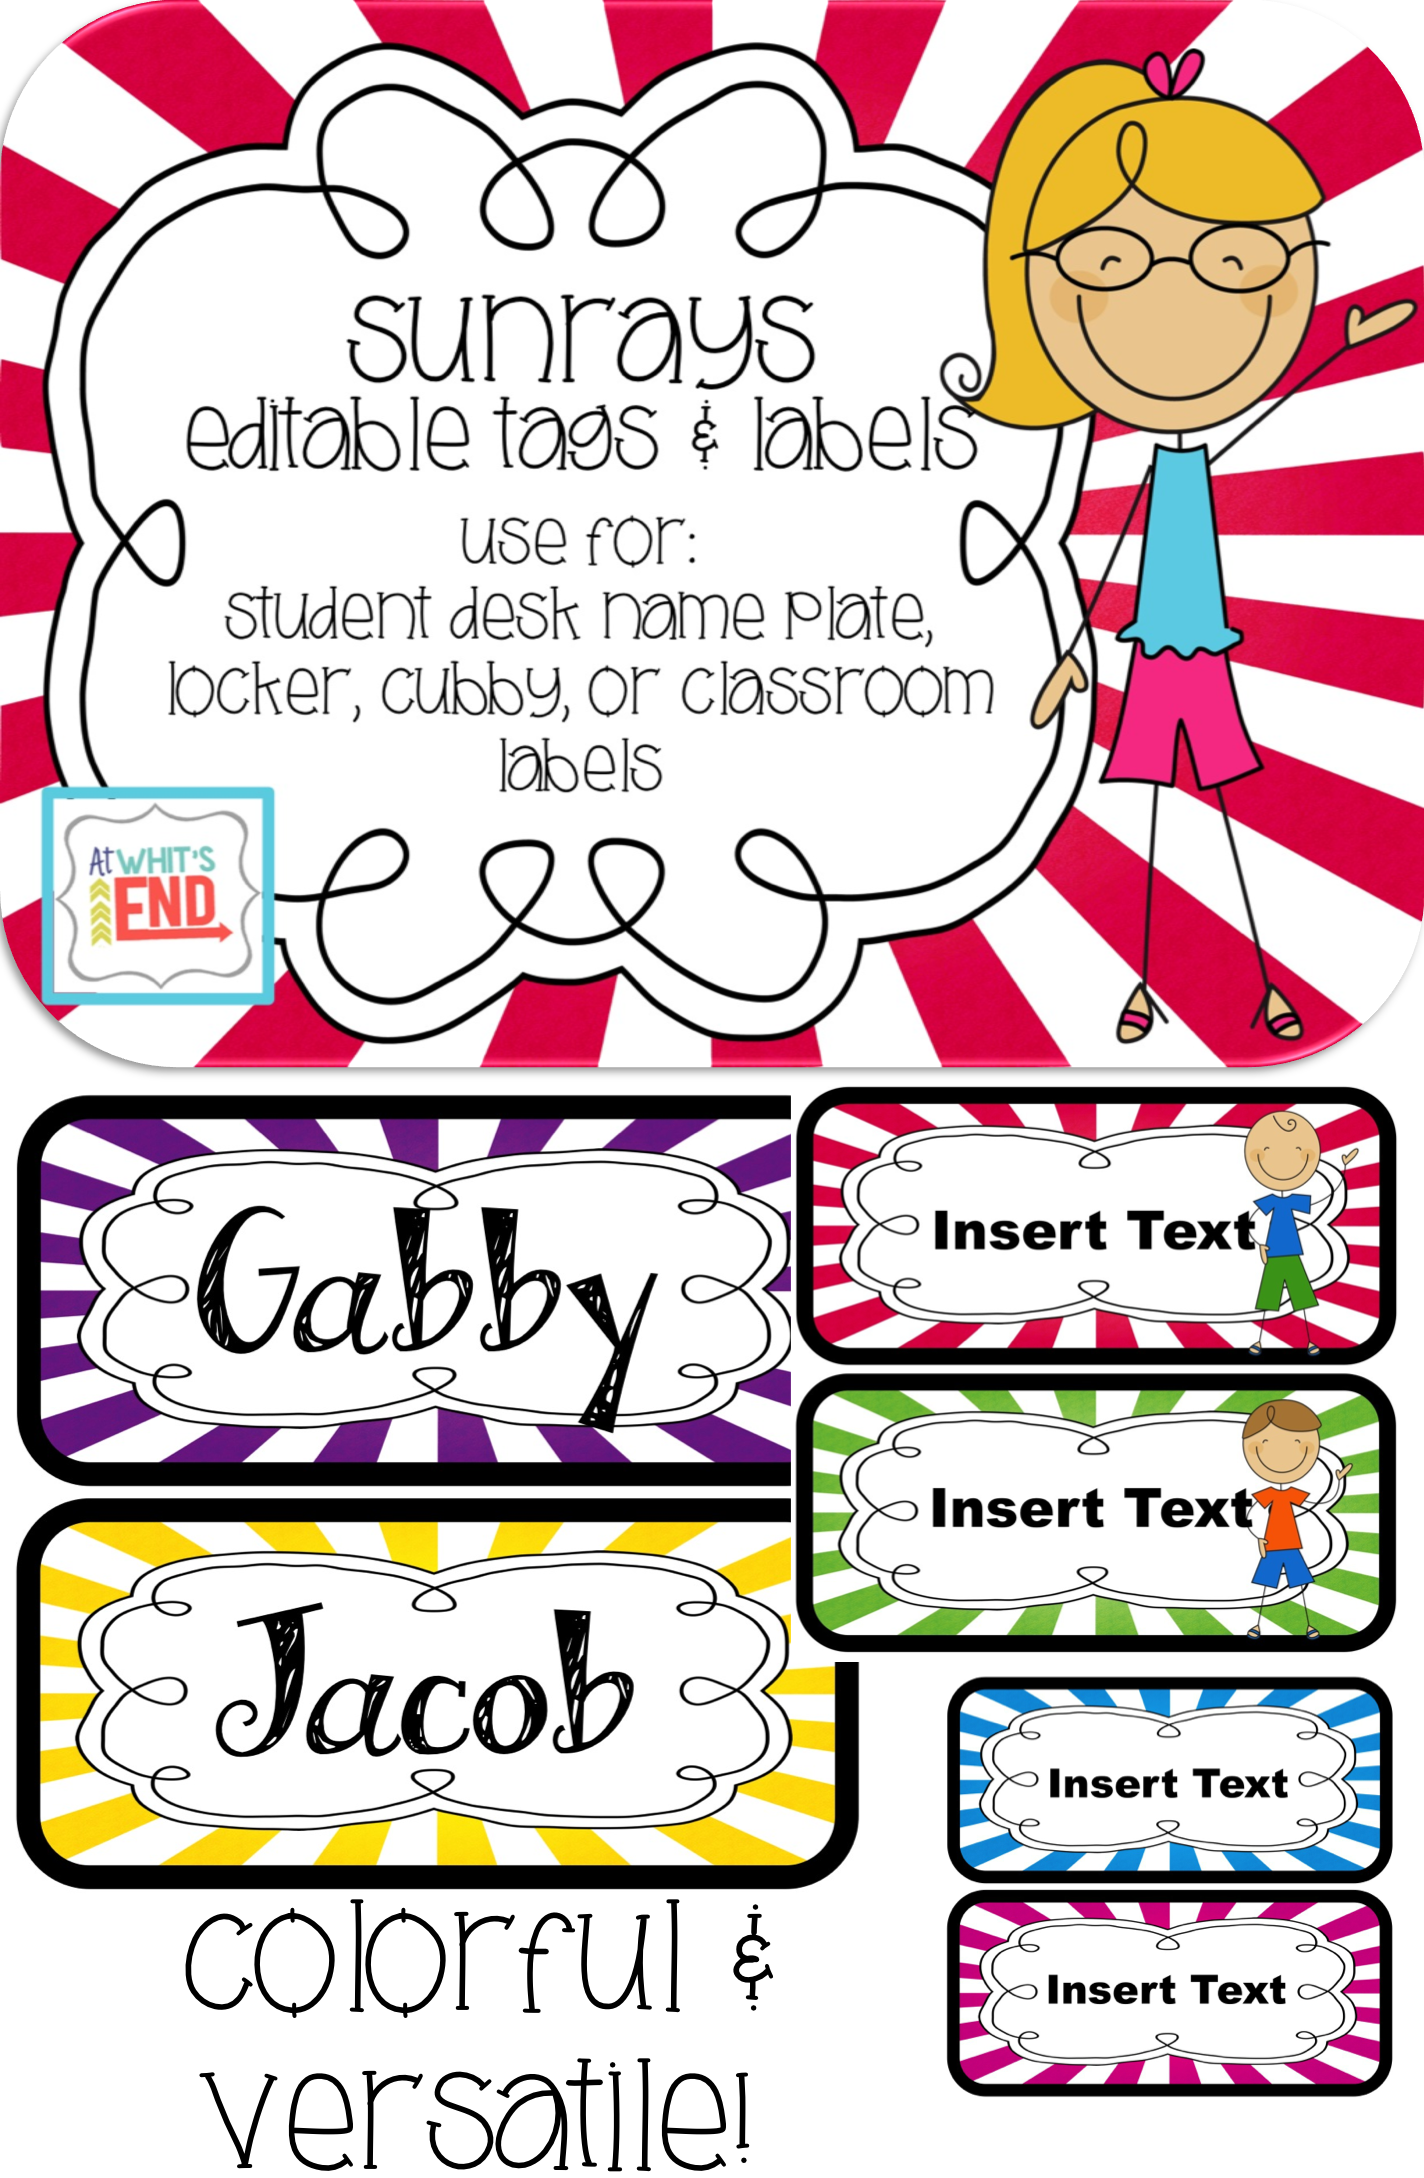 Sunrays Editable Tags Amp Labels Classroom Printables Back To School